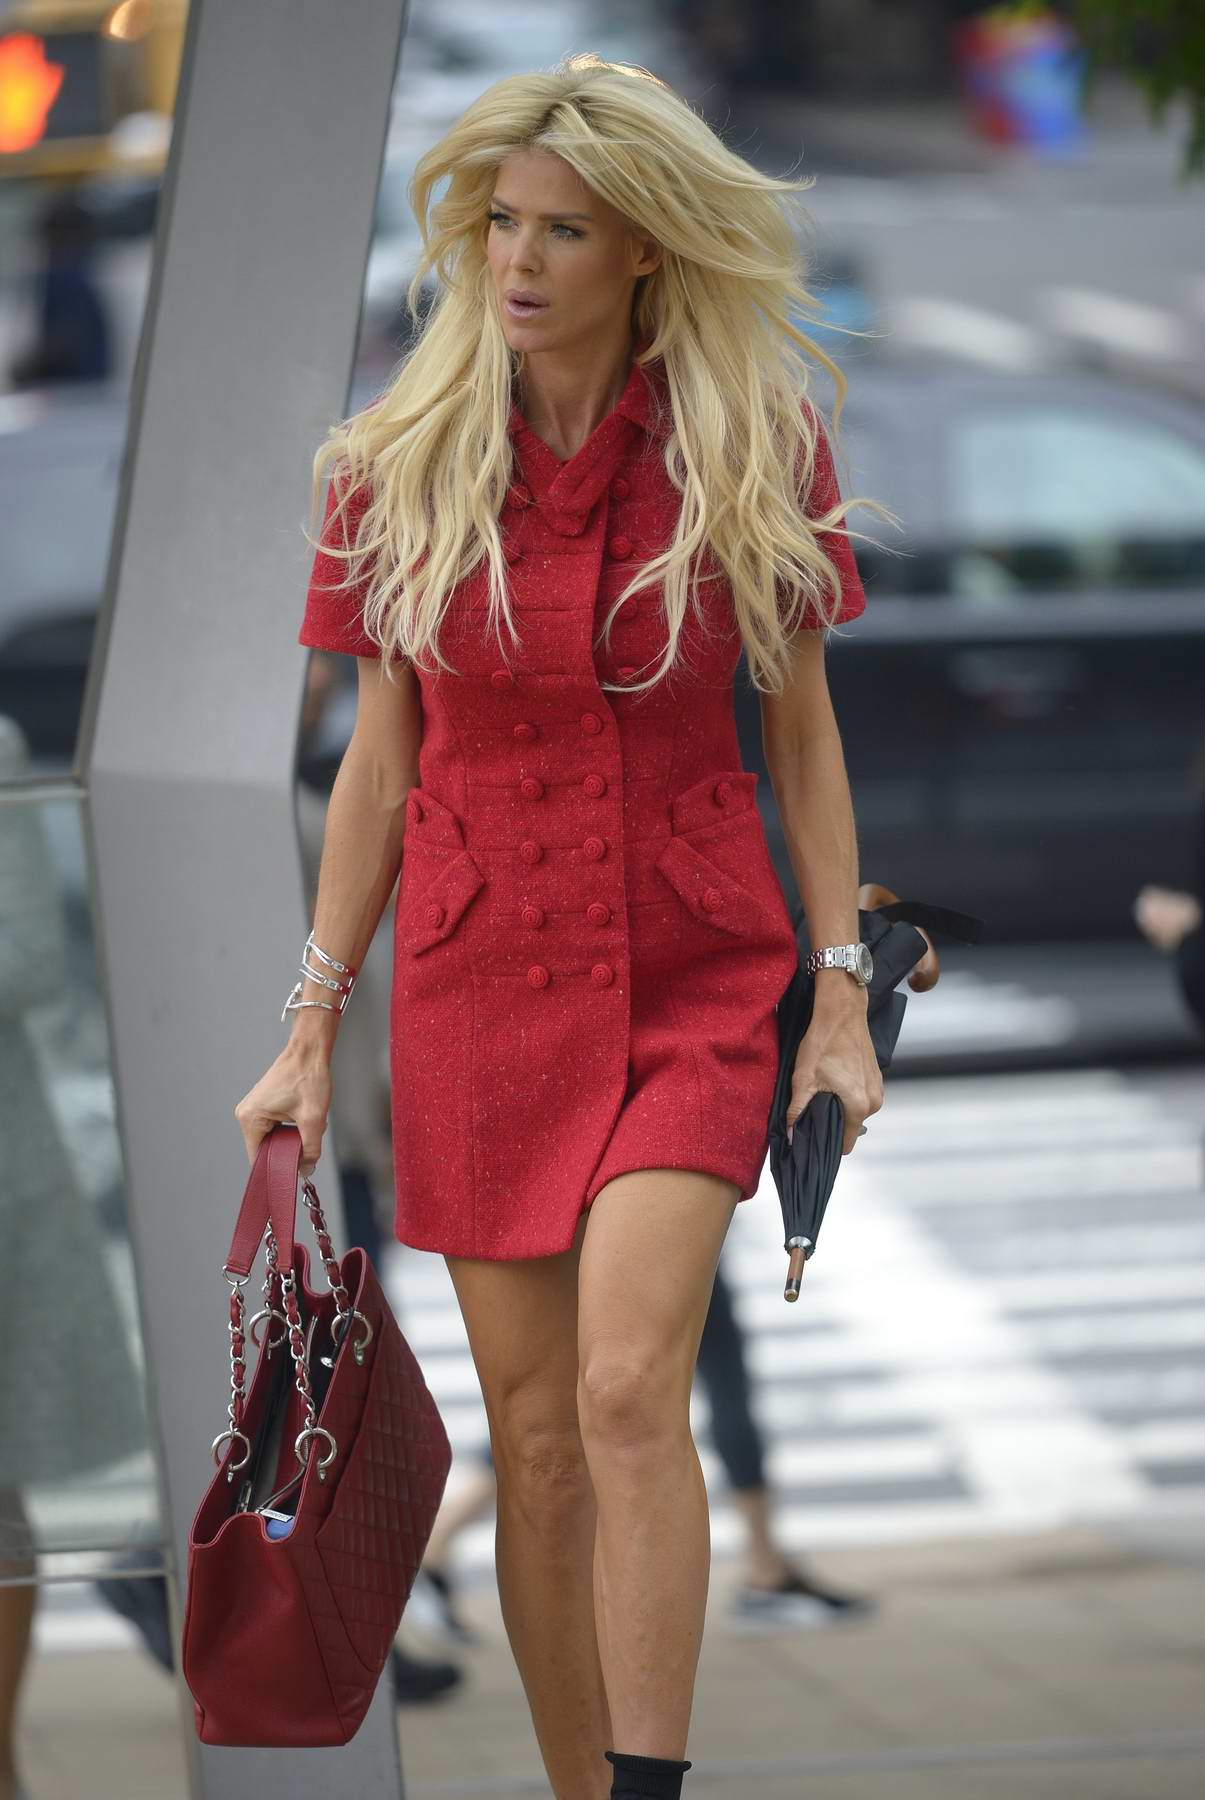 Victoria Silvstedt in a red short dress arriving at the Lincoln Center in New York